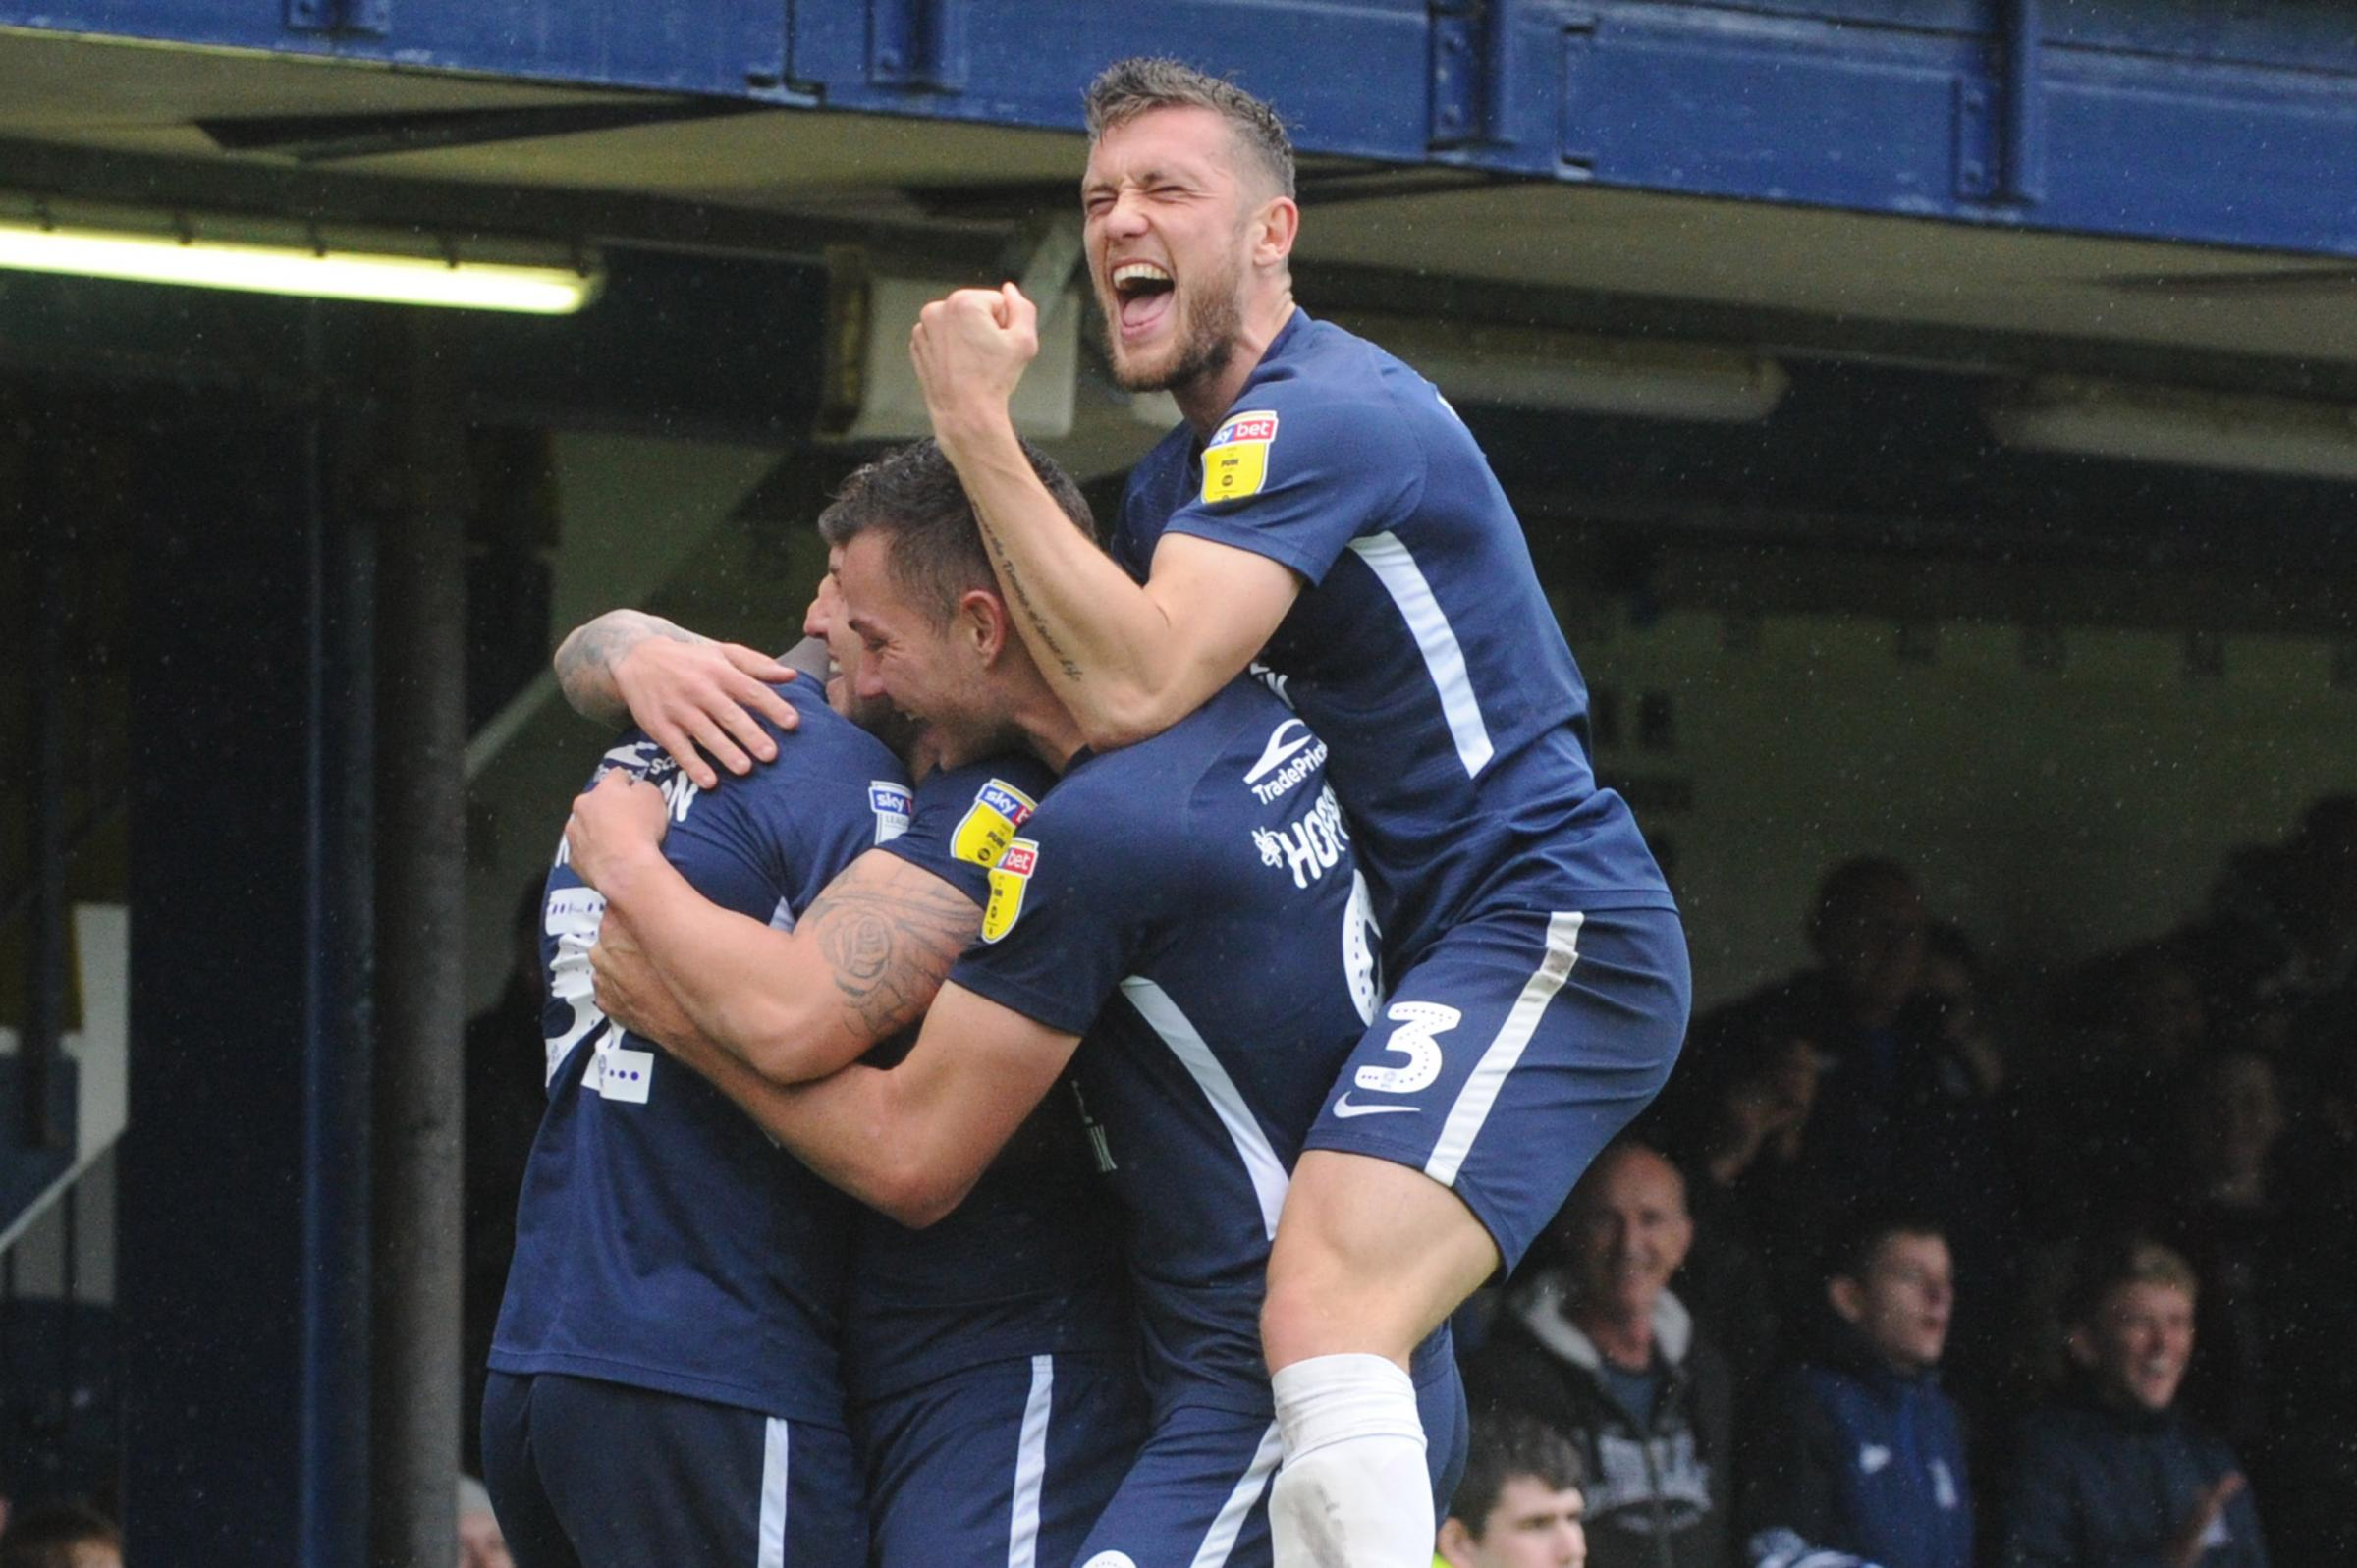 Celebration time - Southend United's players celebrate Simon Cox's goal